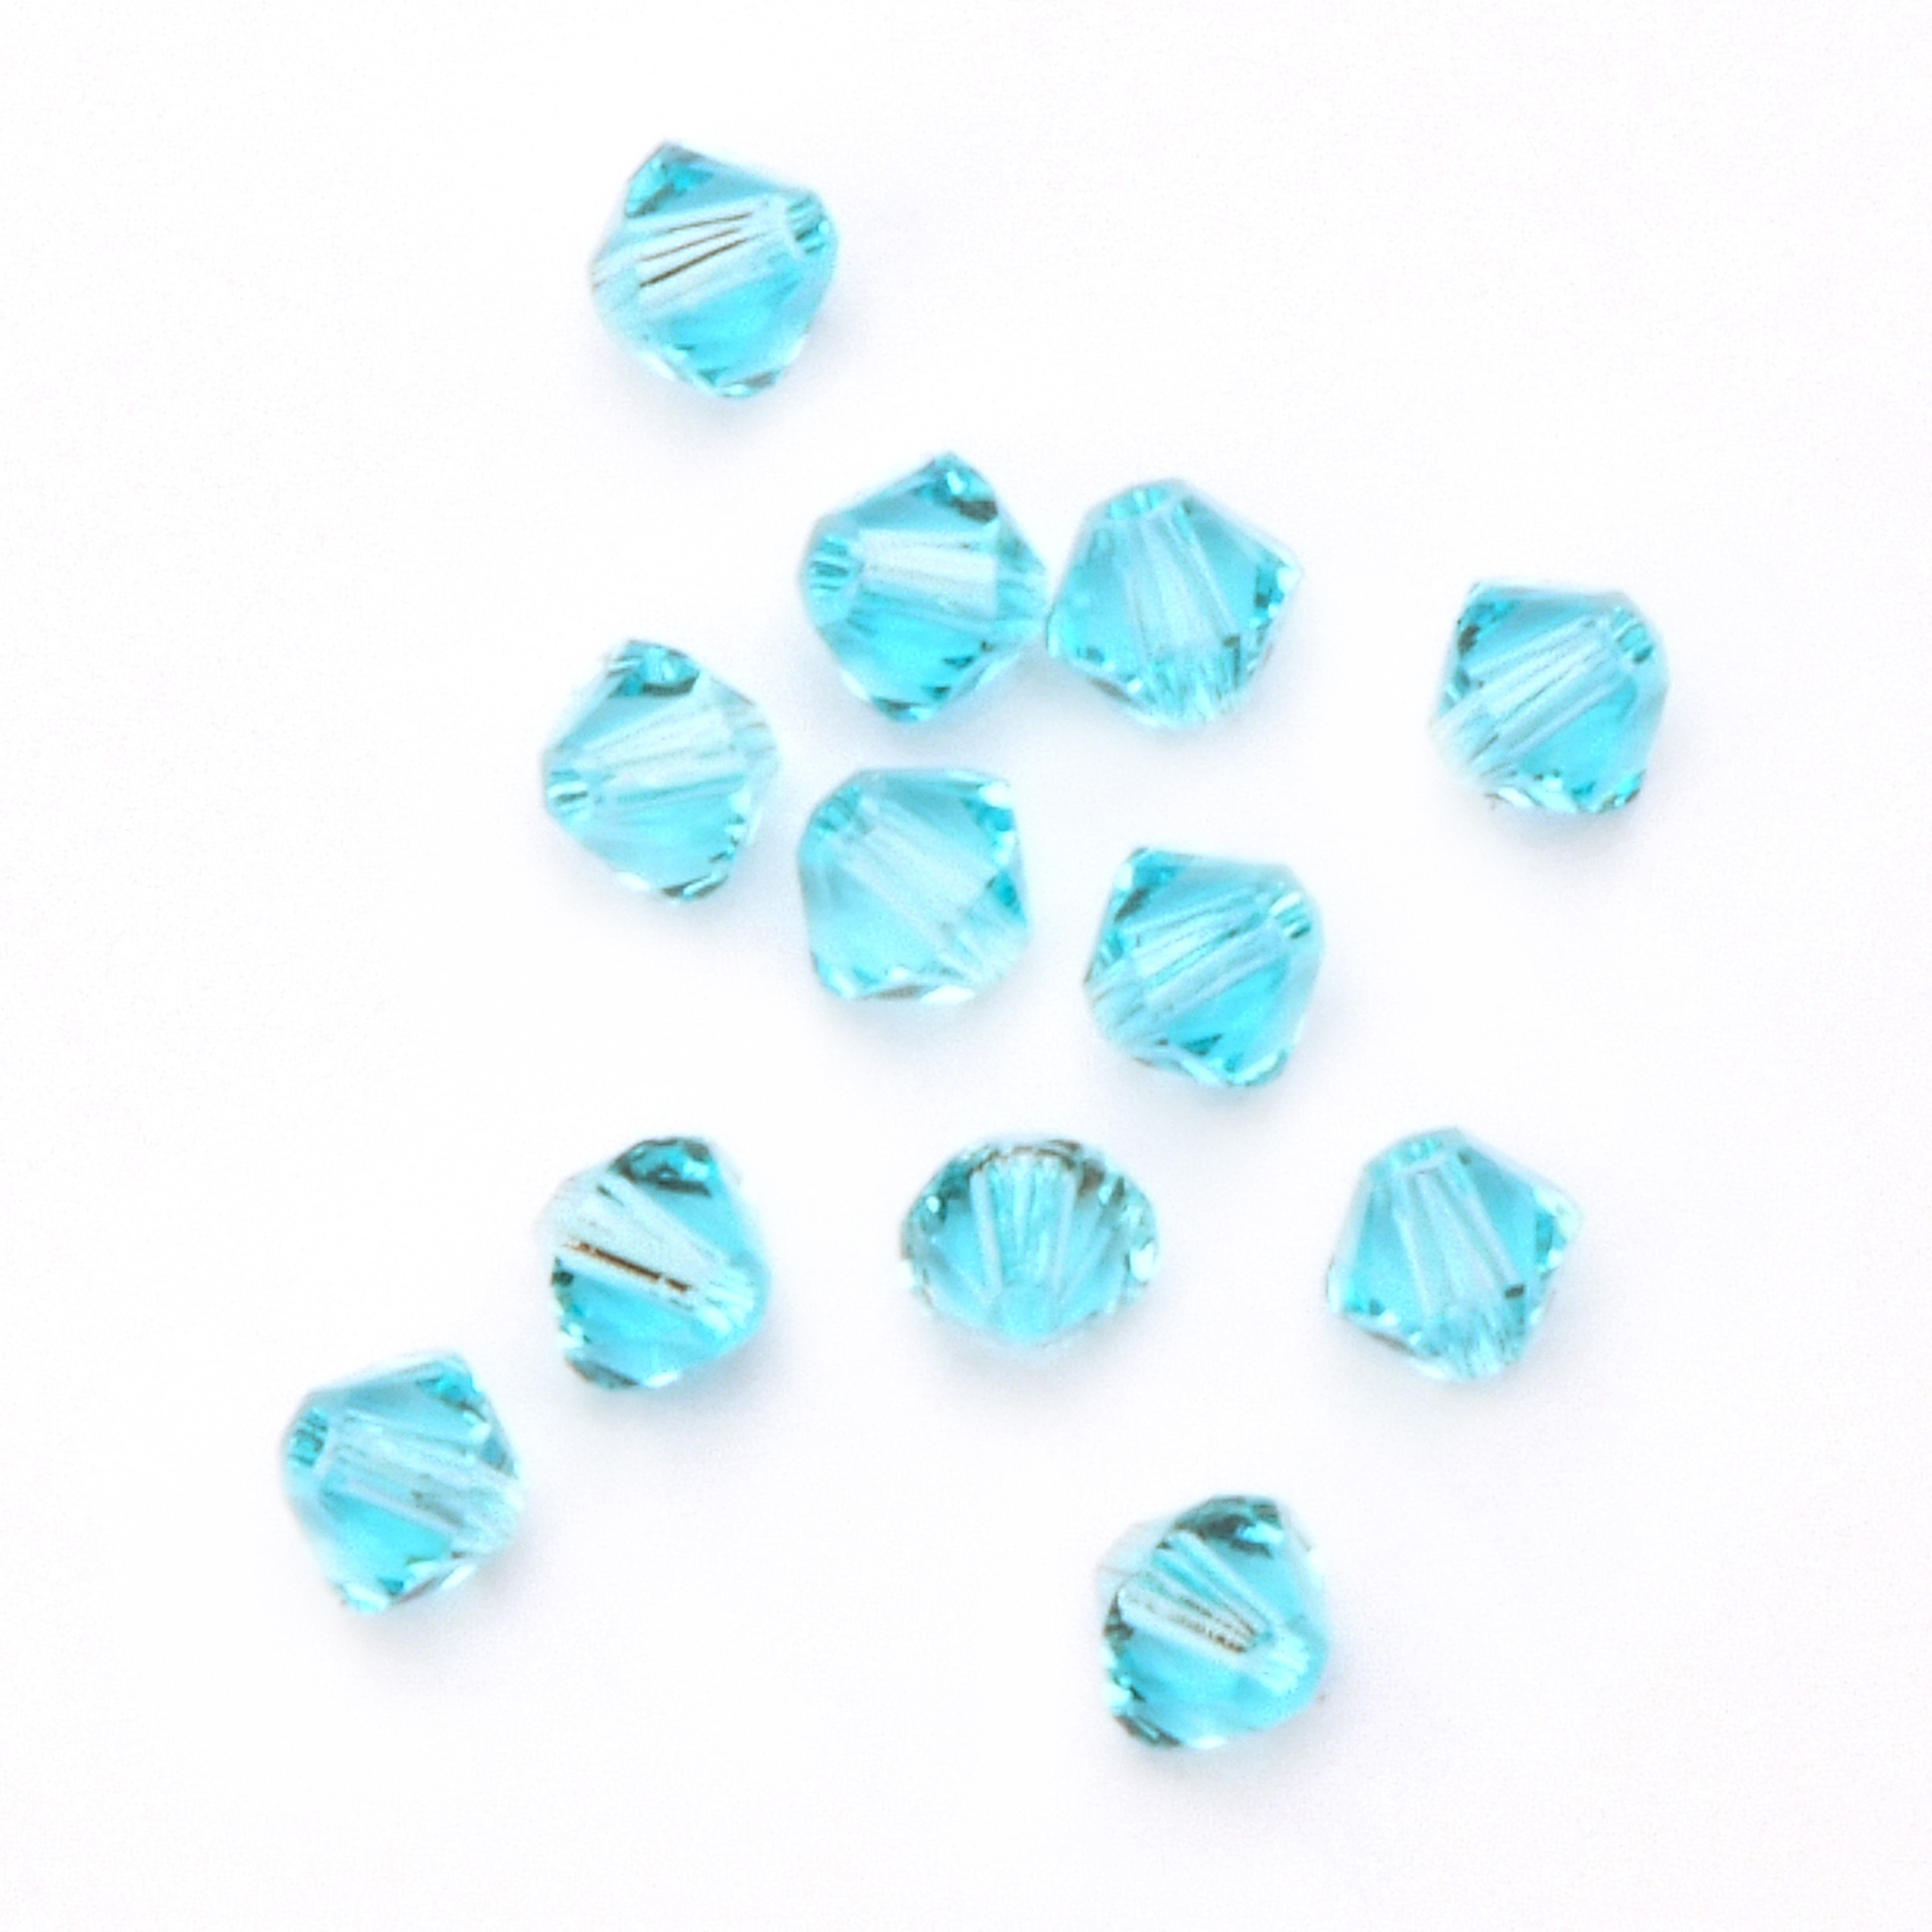 4mm Xilion Cut Bicone Crystal Beads, Light Turquoise